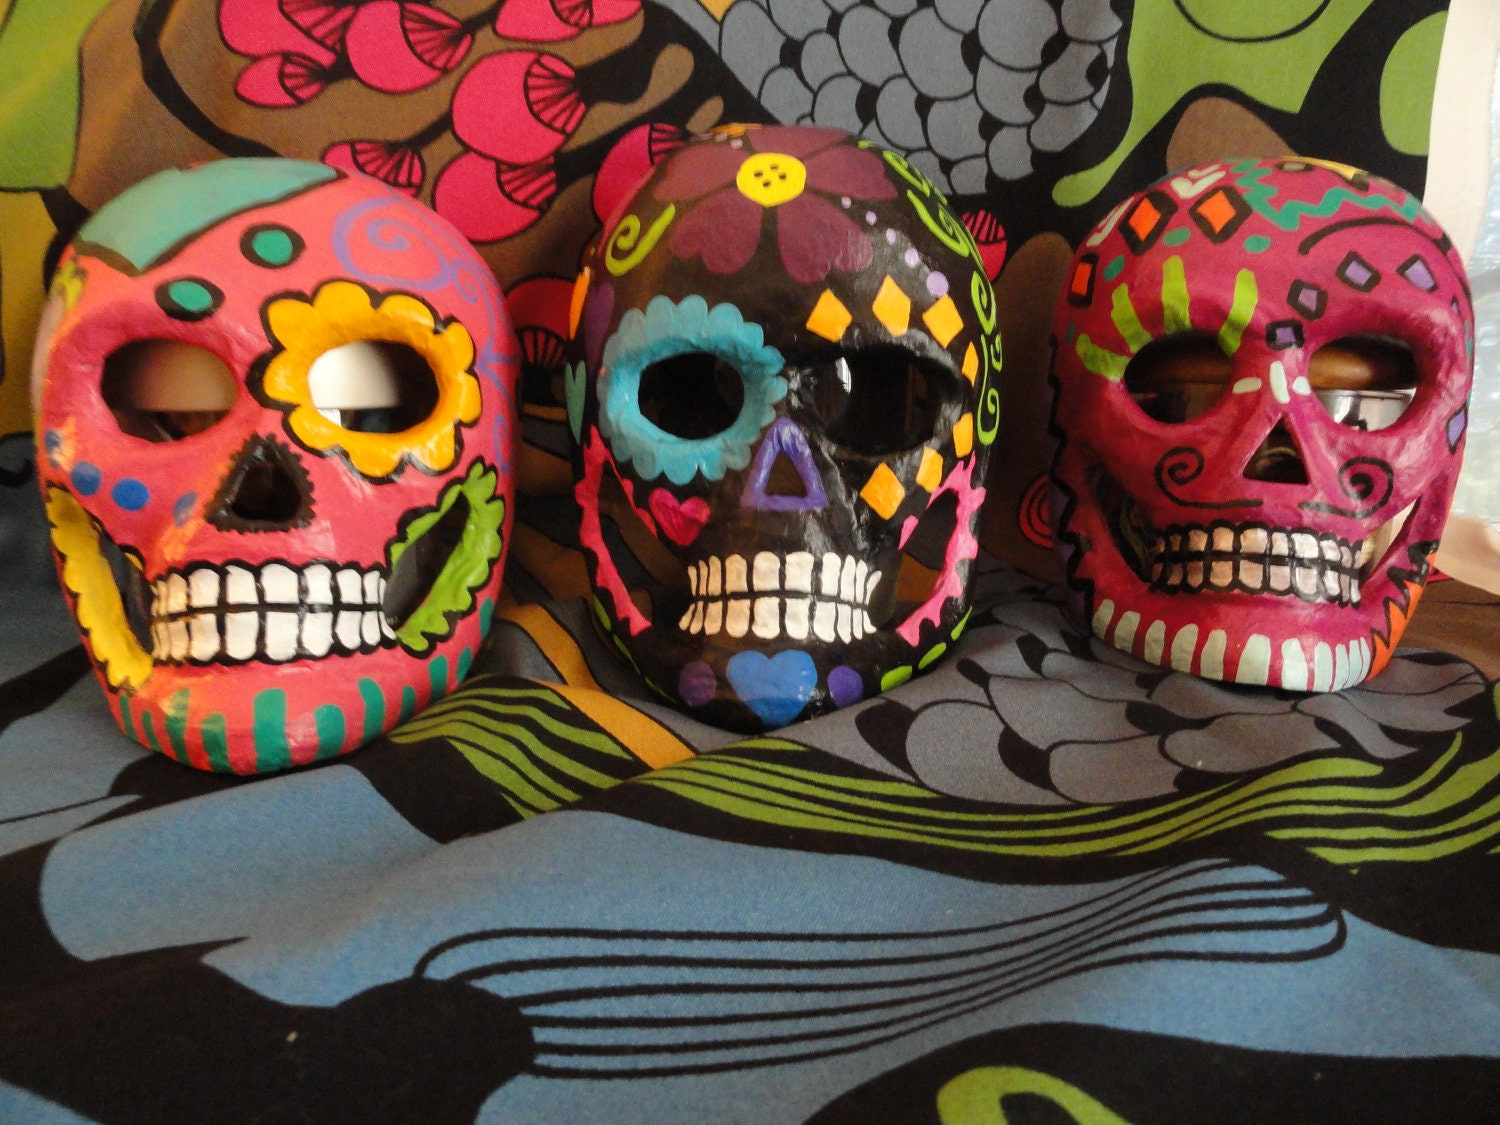 Sugar Skull Mask/Wall Art Paper Mache by SuitePotaytoes on Etsy